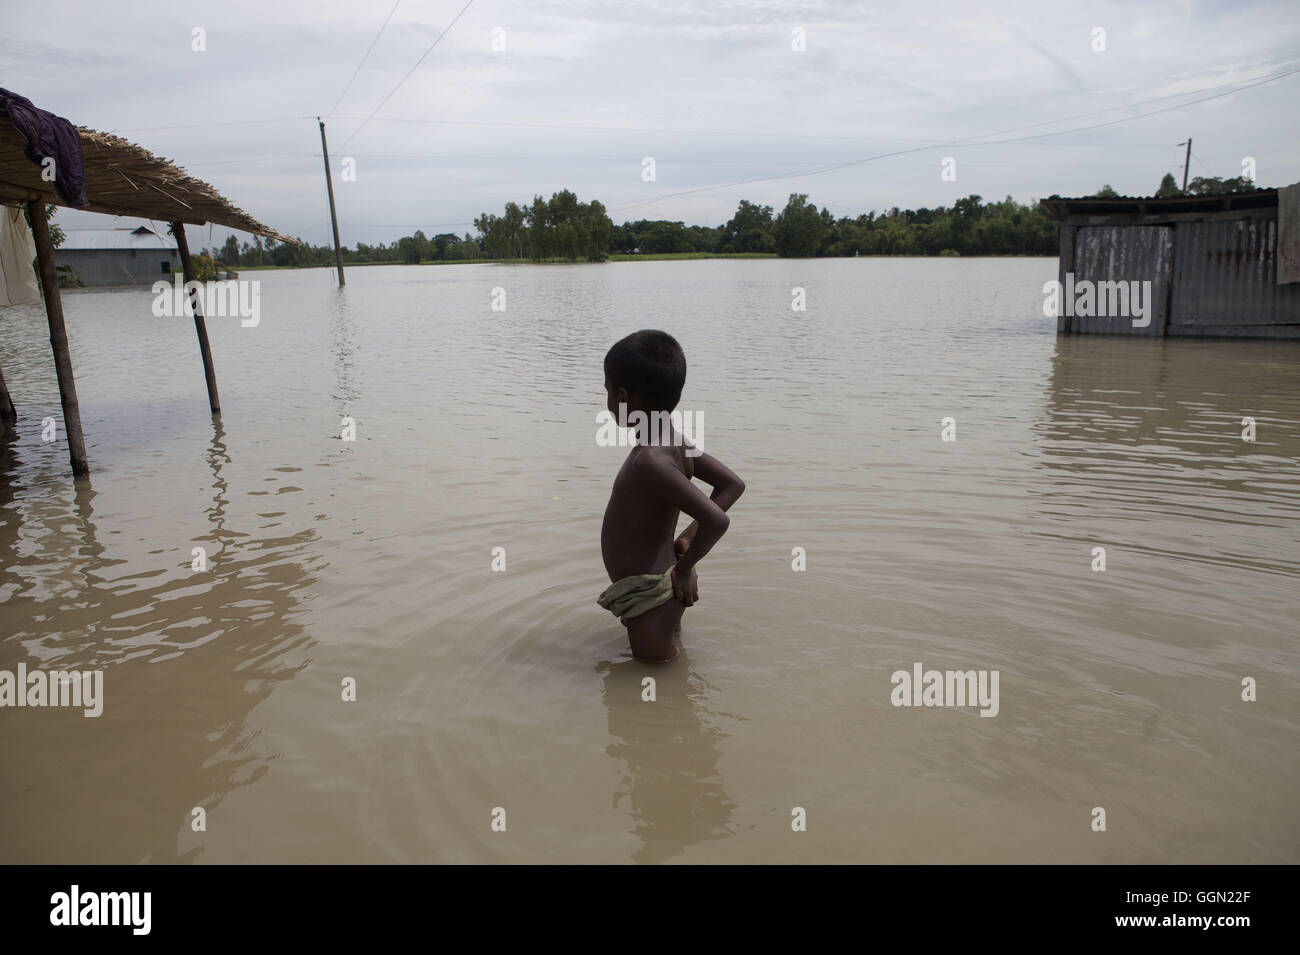 August 2, 2016 - Jamalpur, Mymensingh, Bangladesh - A boy stands in floodwaters, waiting for a boat at Islampur, - Stock Image